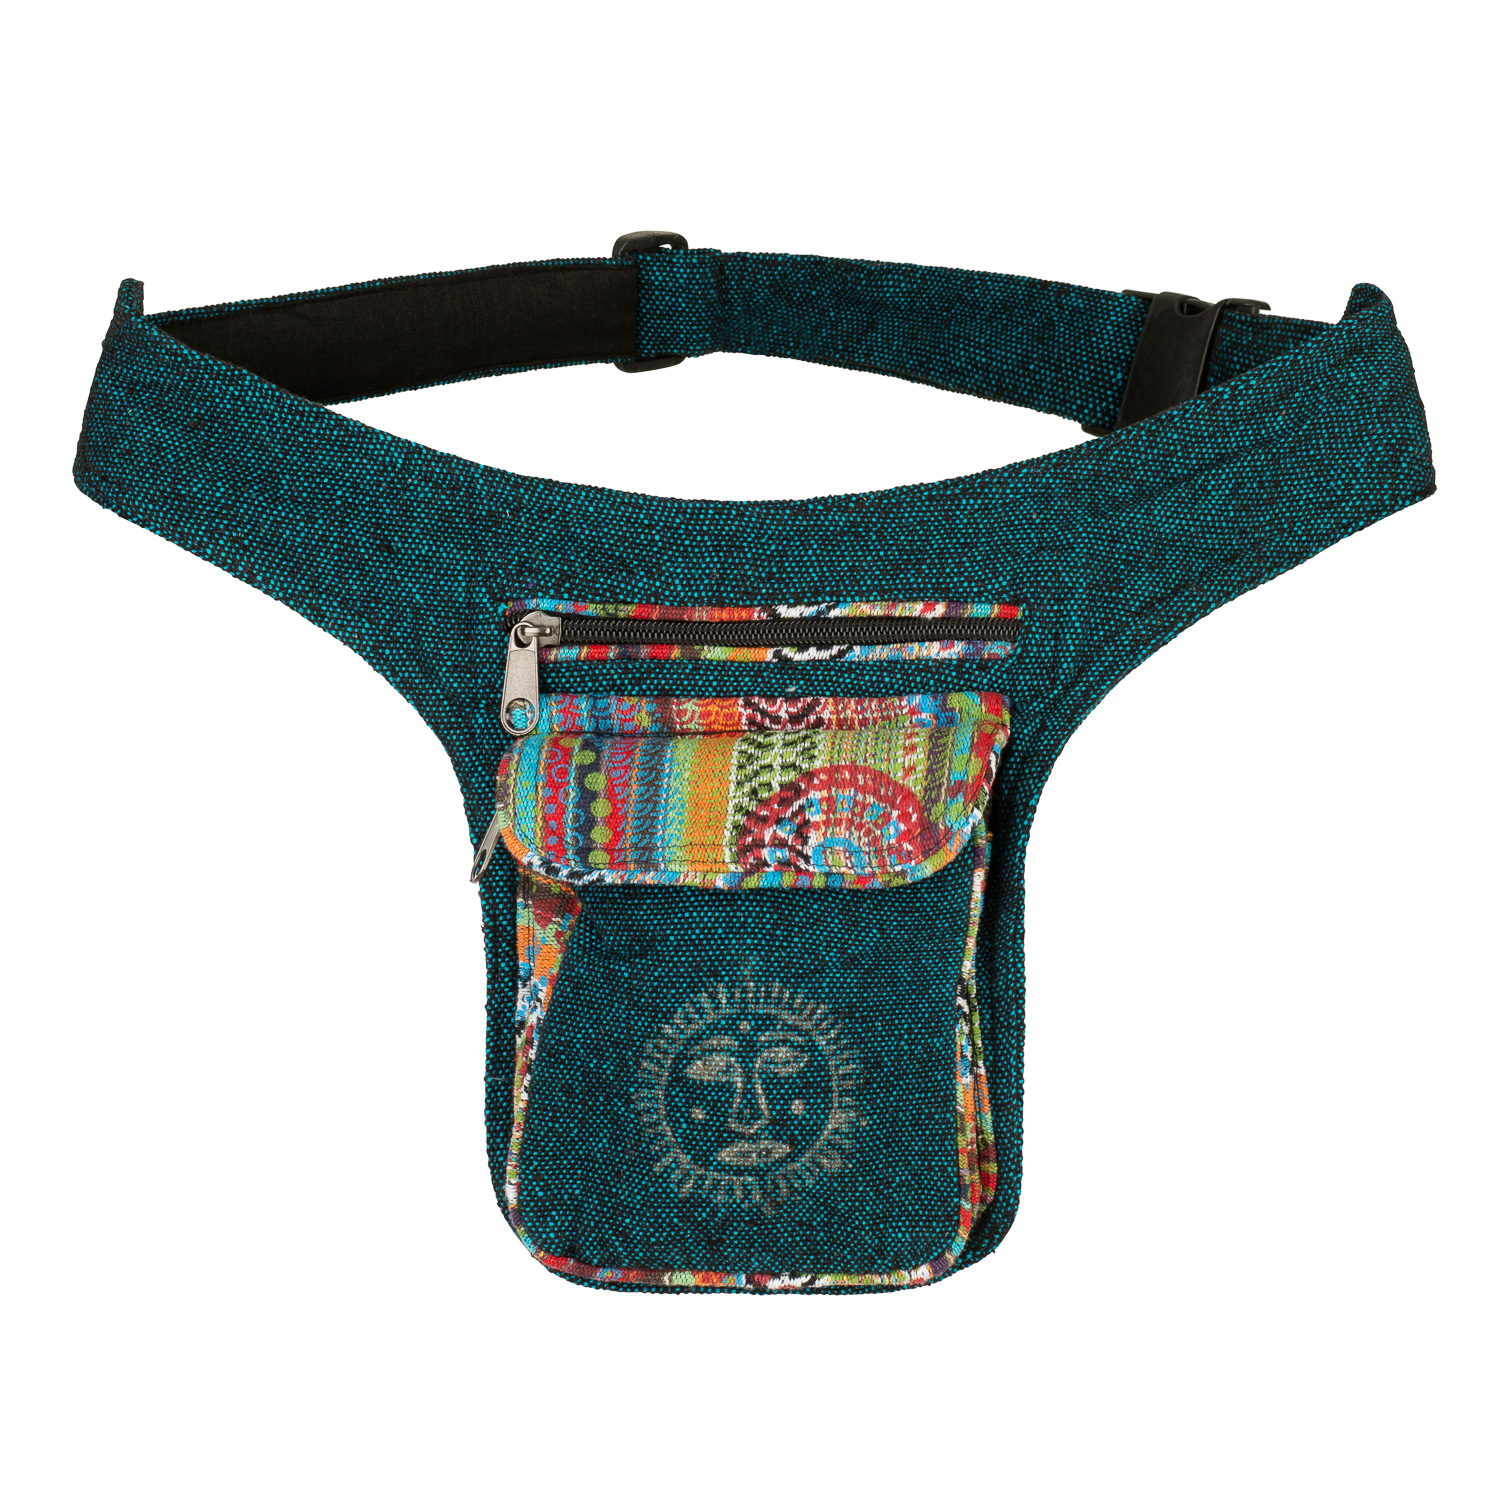 Gheri cotton festival belt bag